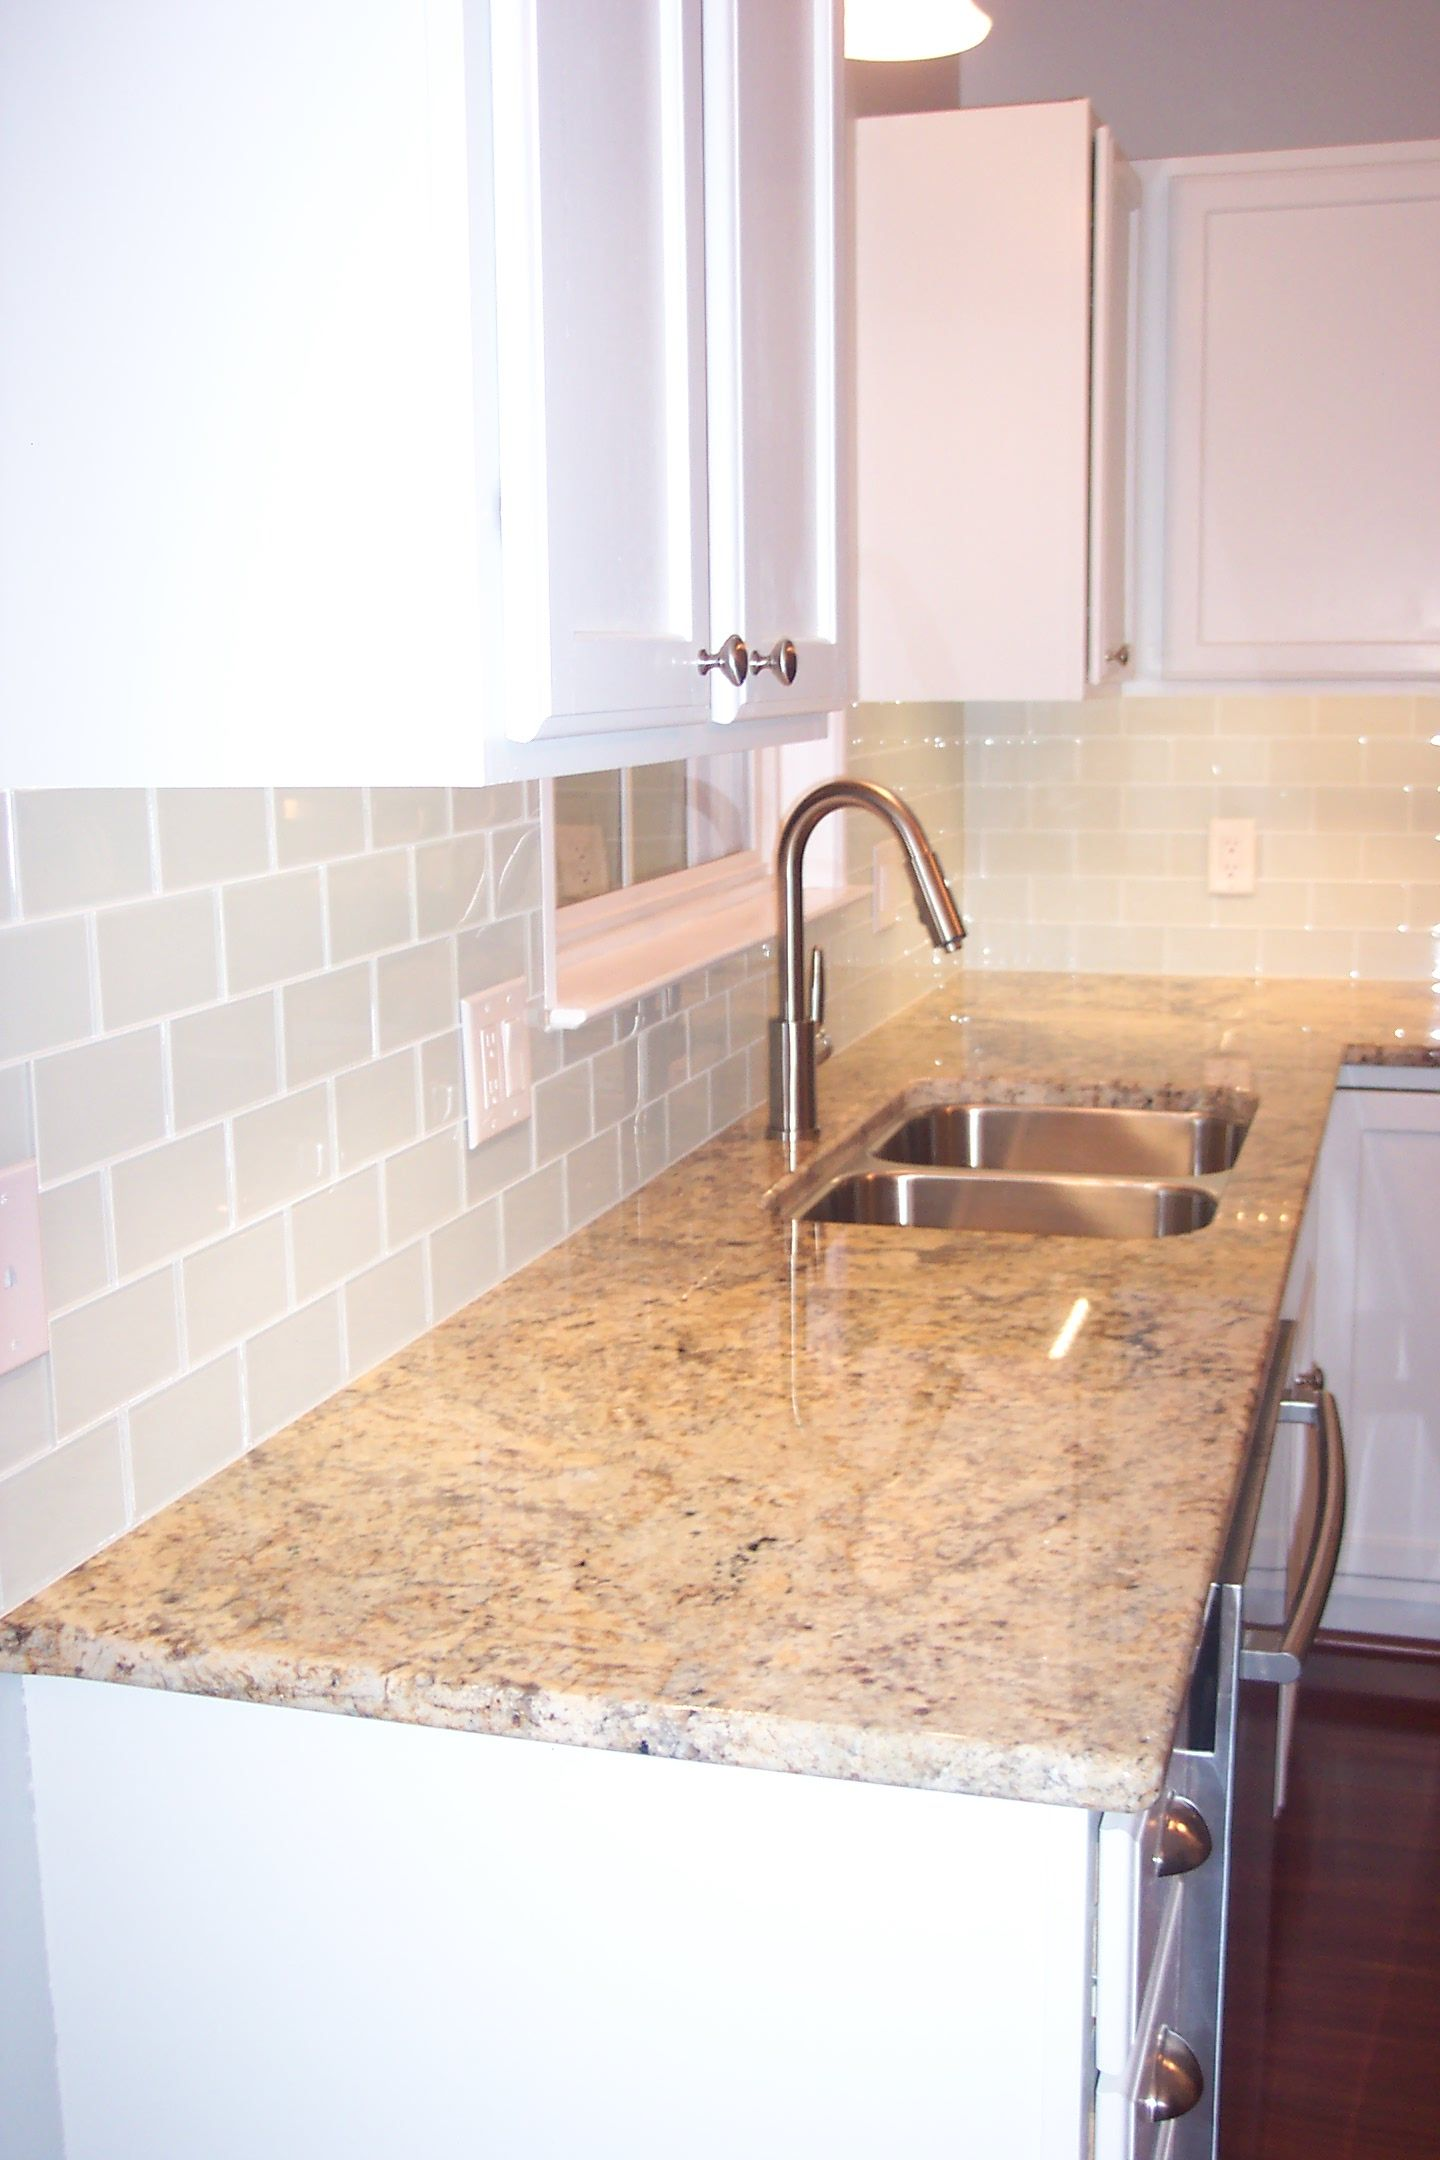 Kitchen Tile Backsplash White Color | Kitchen remodel \'17 ...